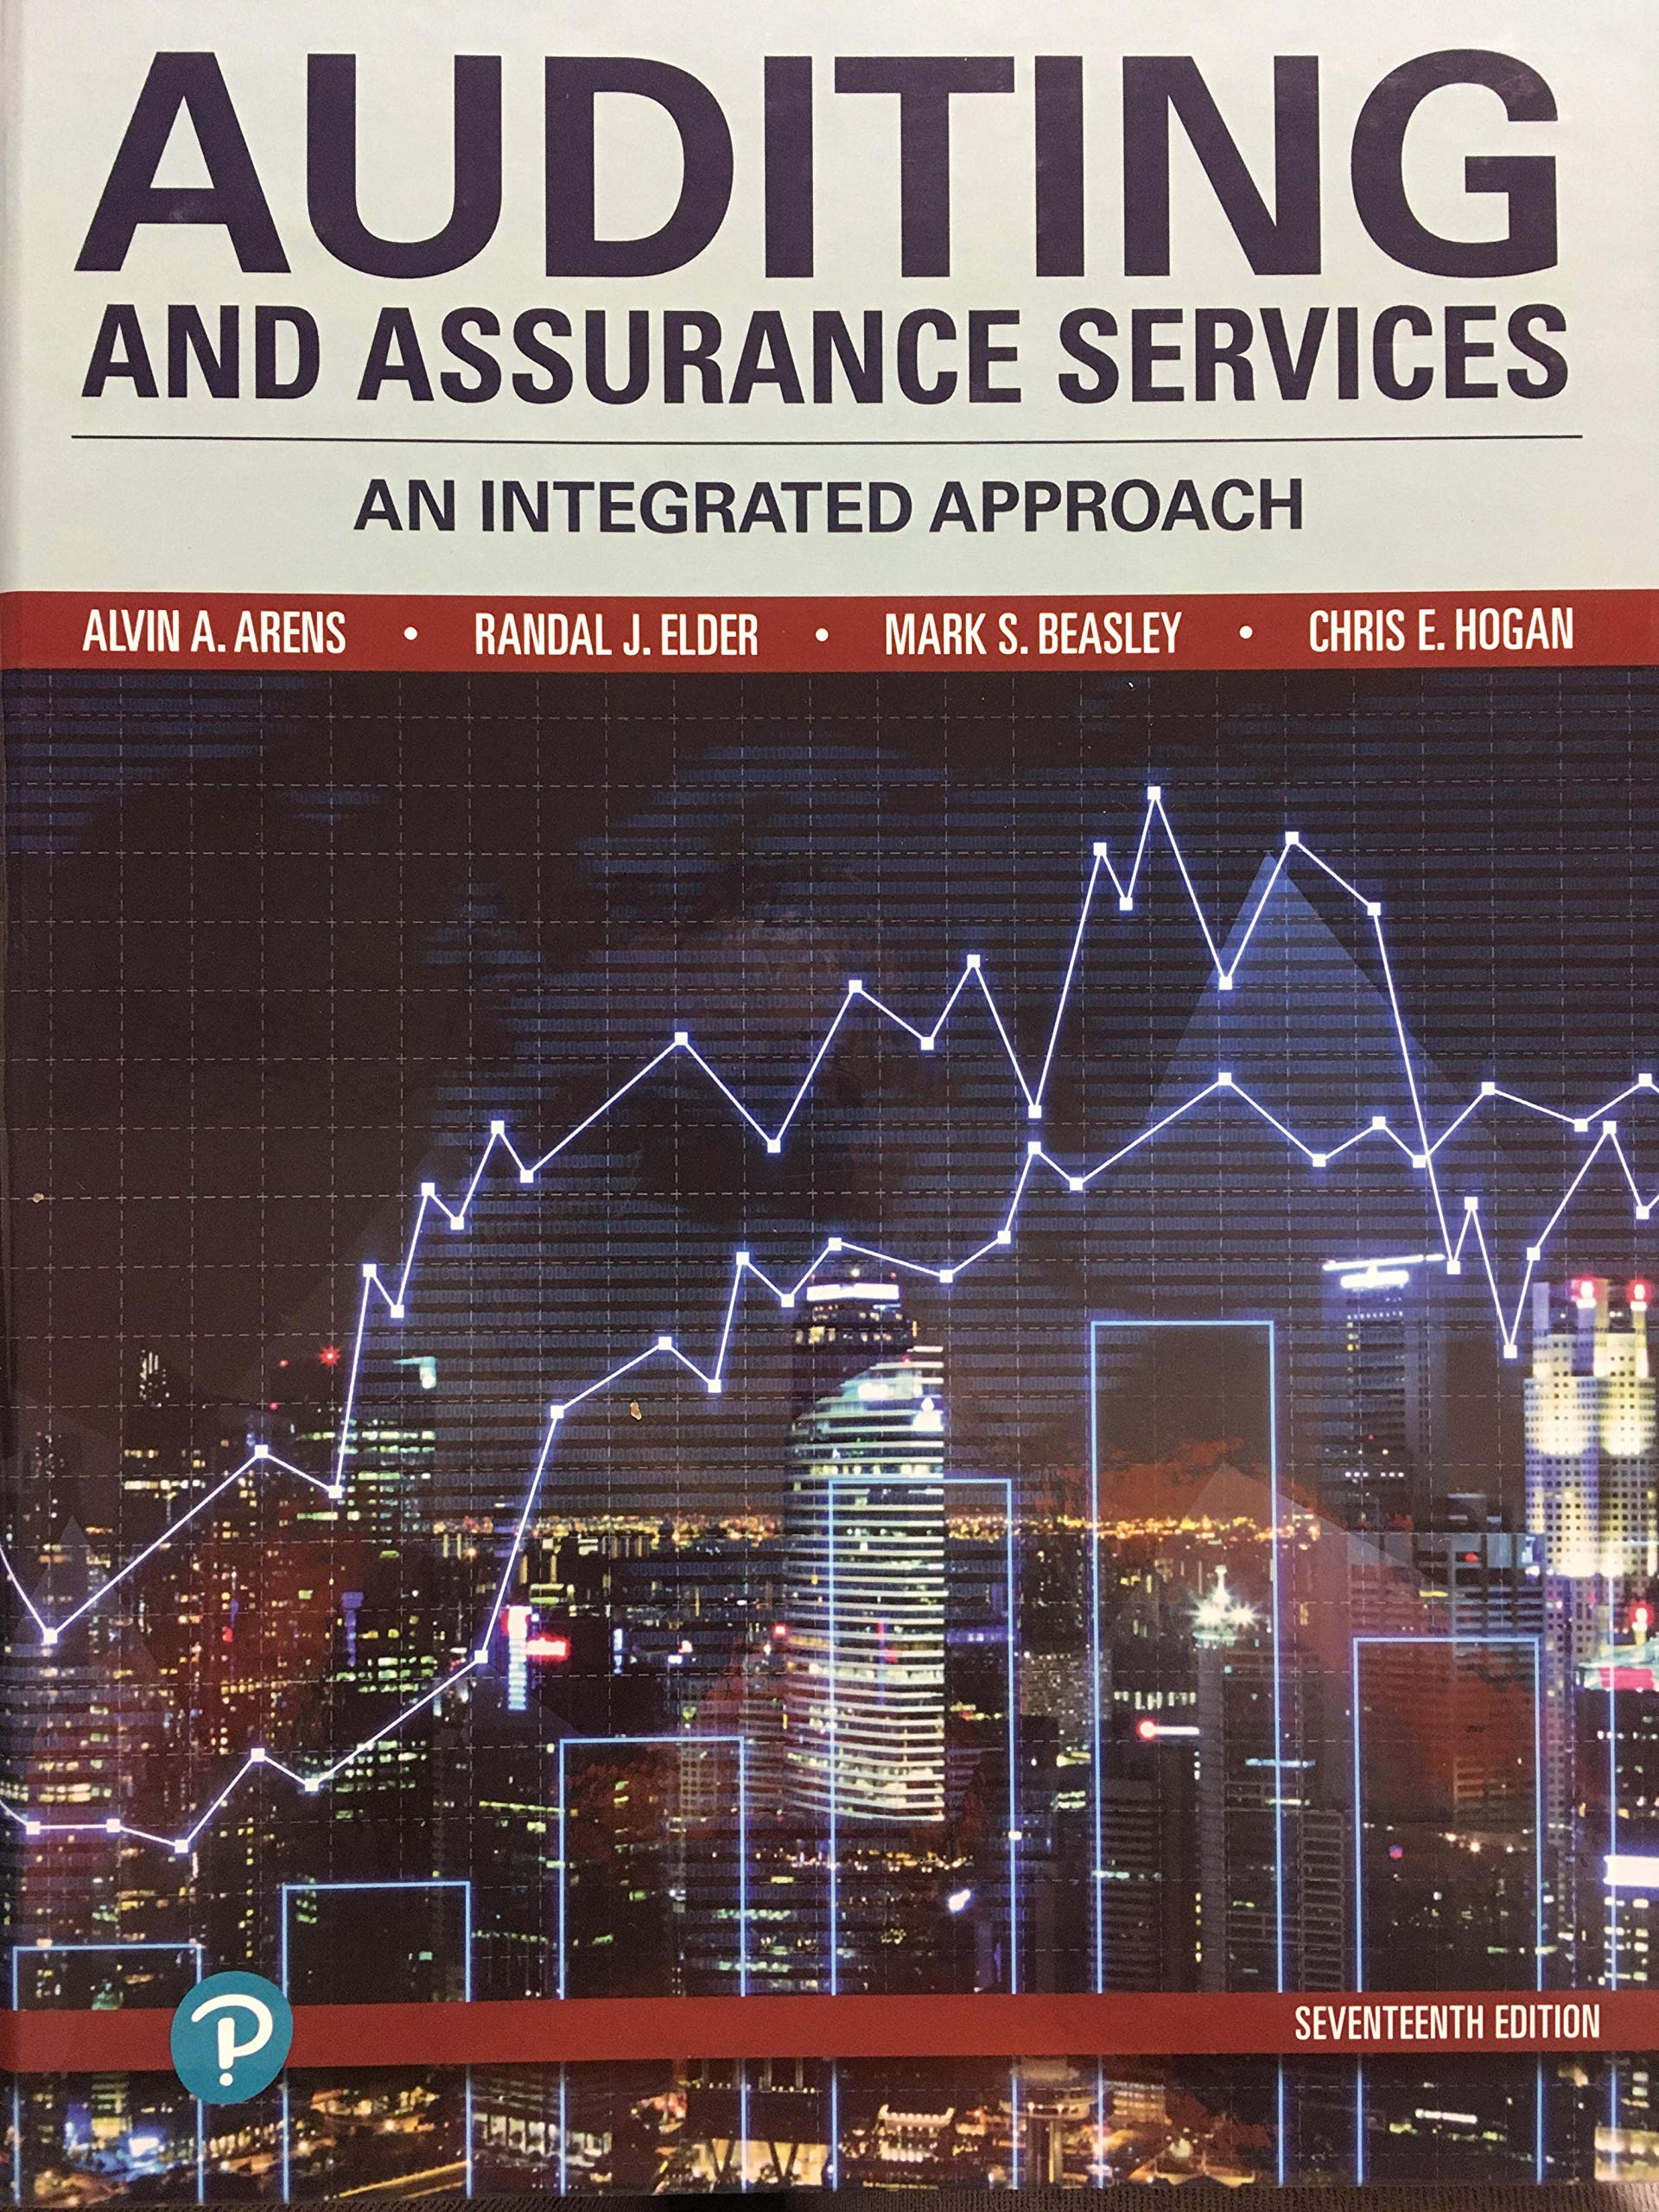 Auditing And Assurance Services 17th Edition Pdf